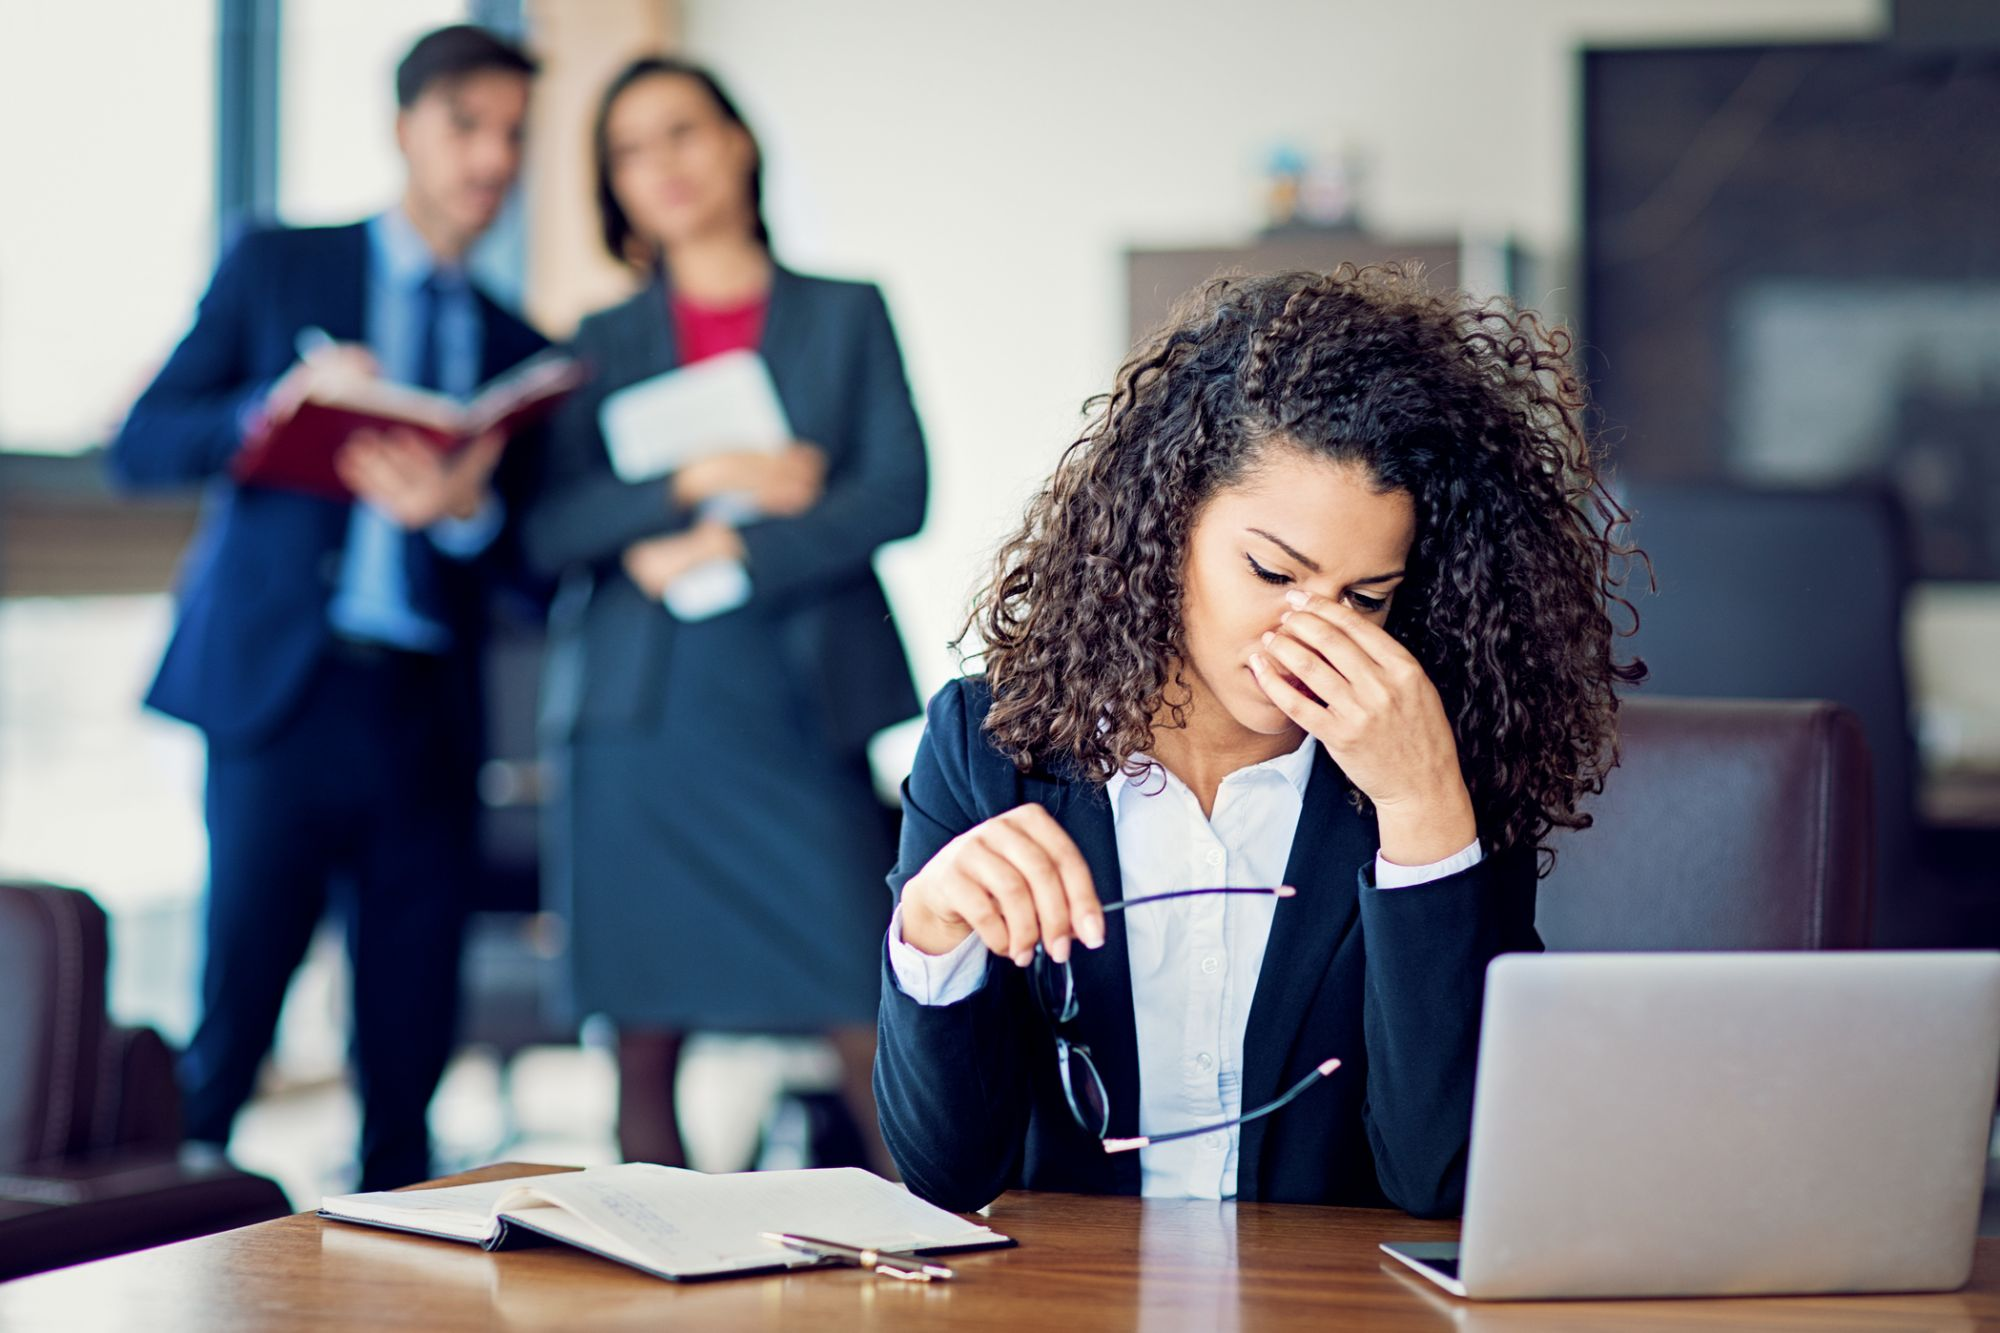 Can Being Bullied Make You a More Successful Entrepreneur?